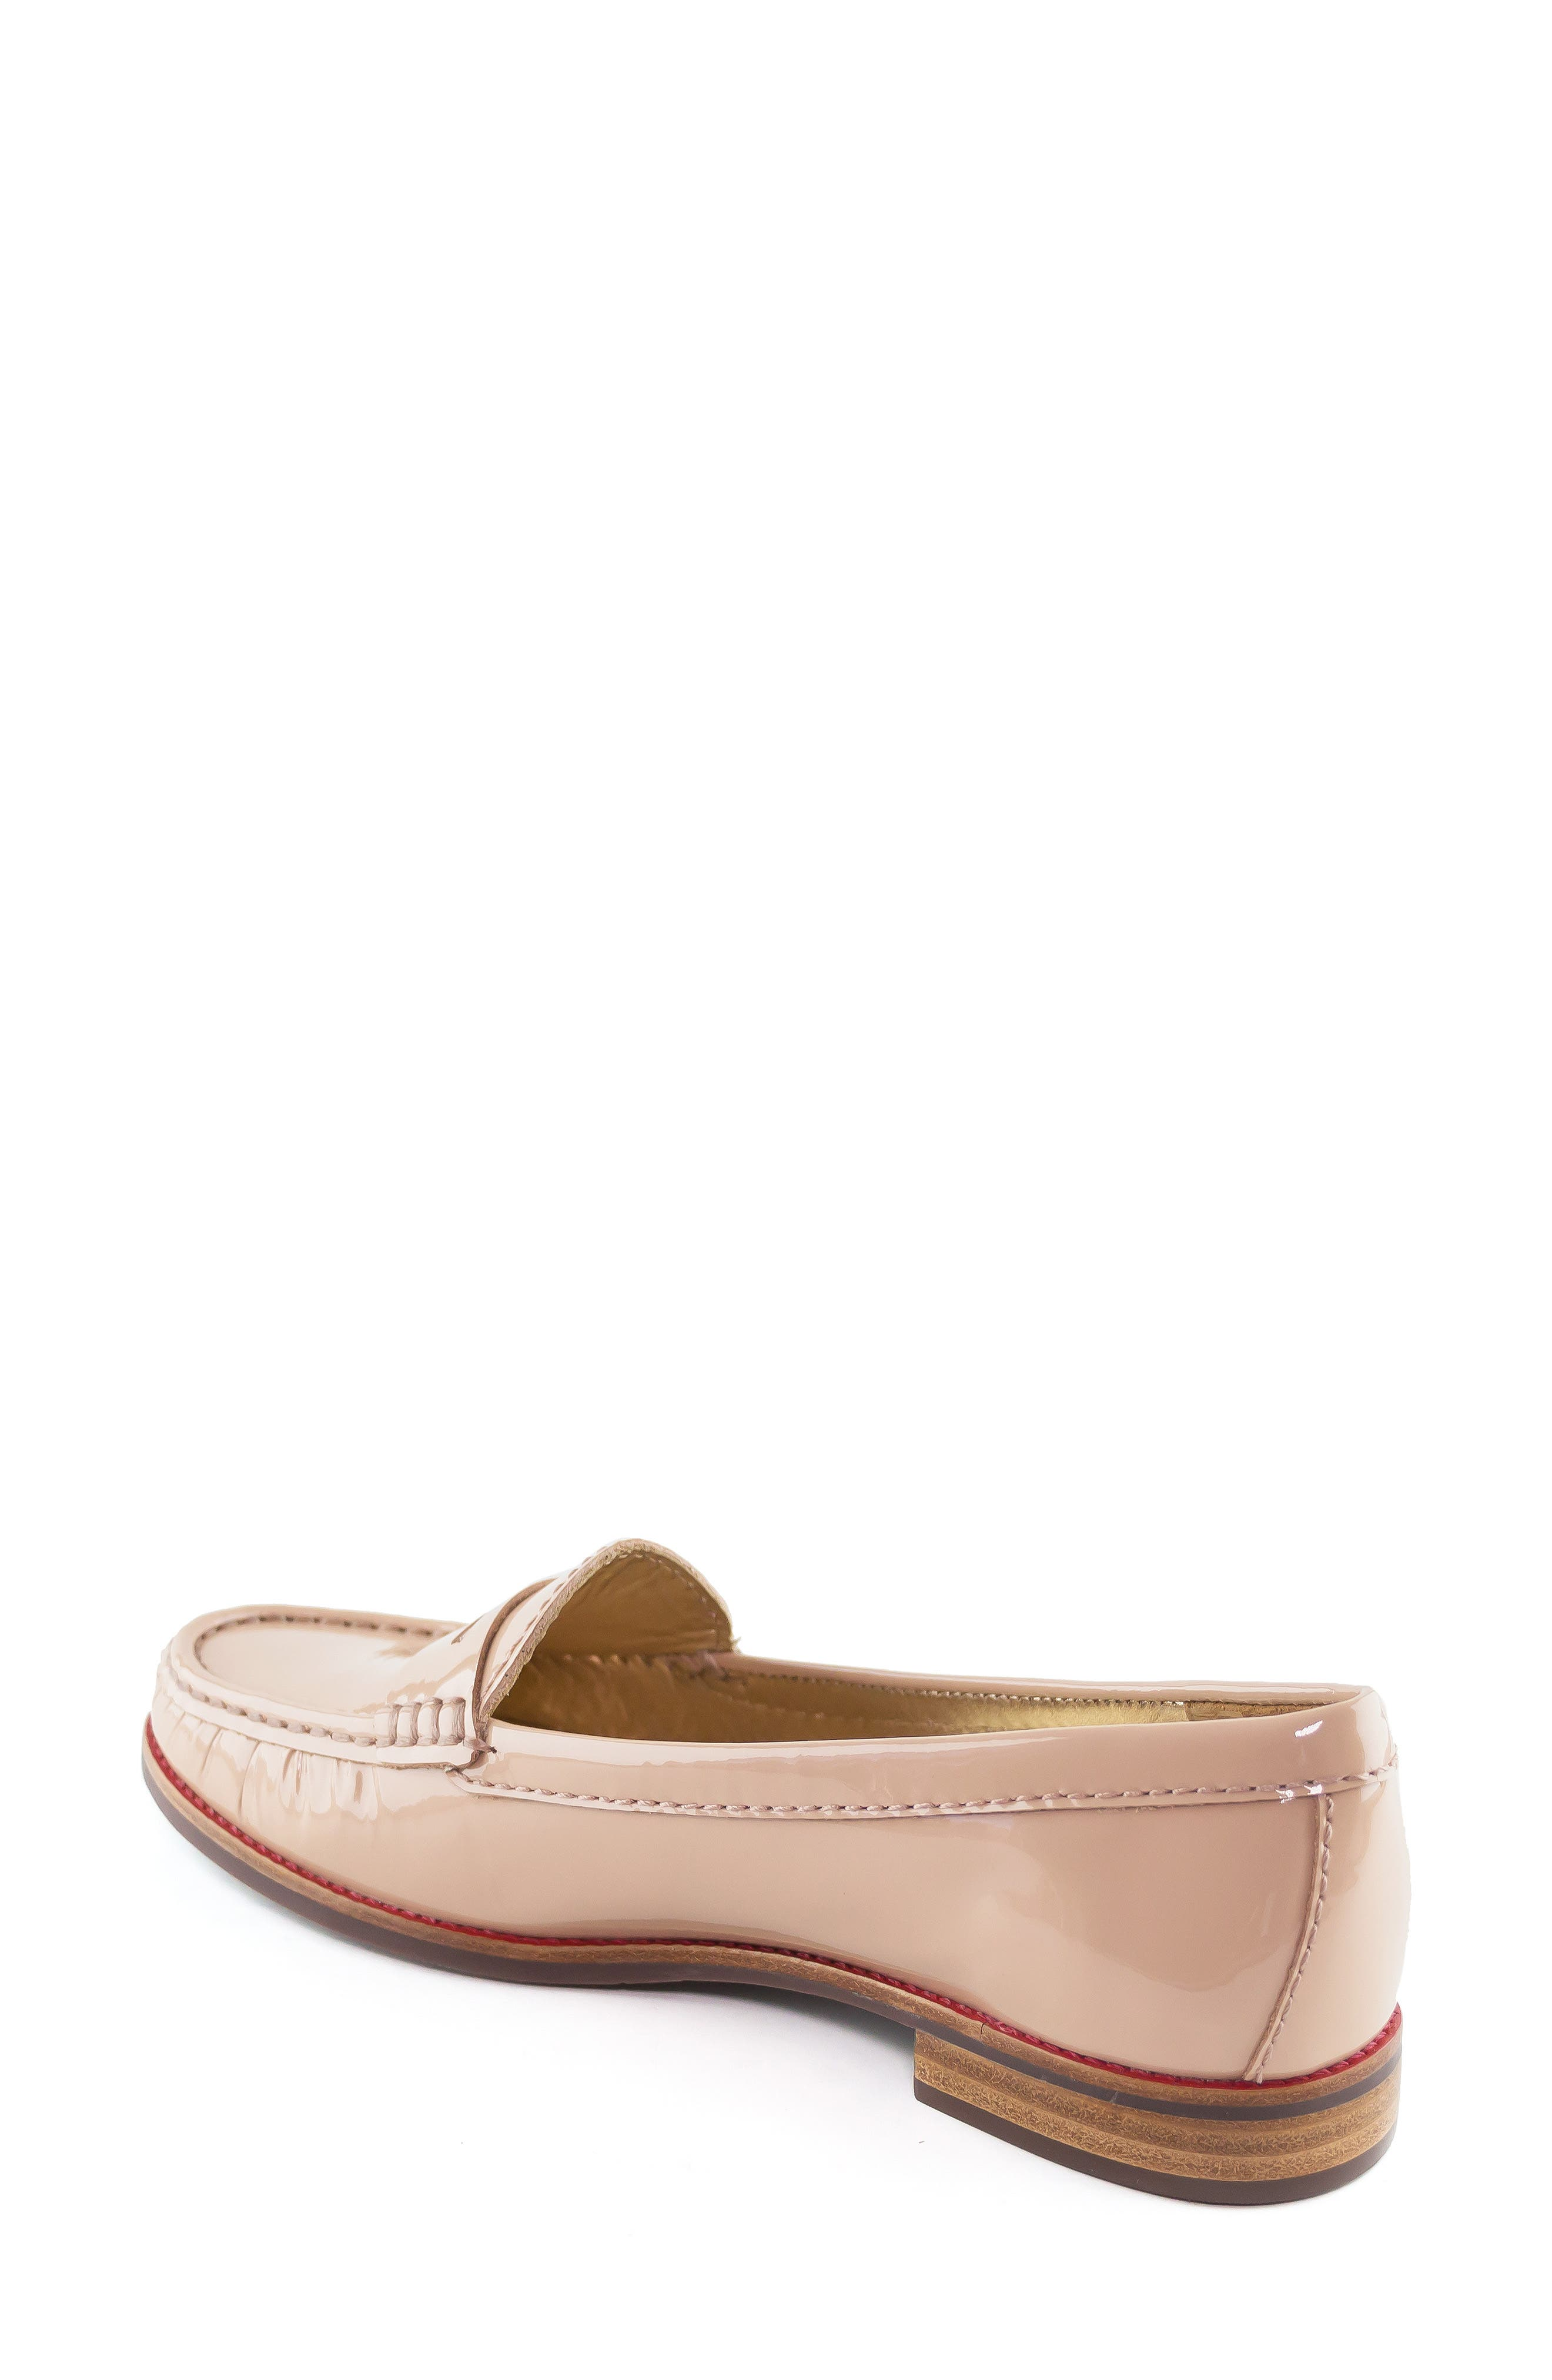 East Village Loafer,                             Alternate thumbnail 2, color,                             NUDE PATENT